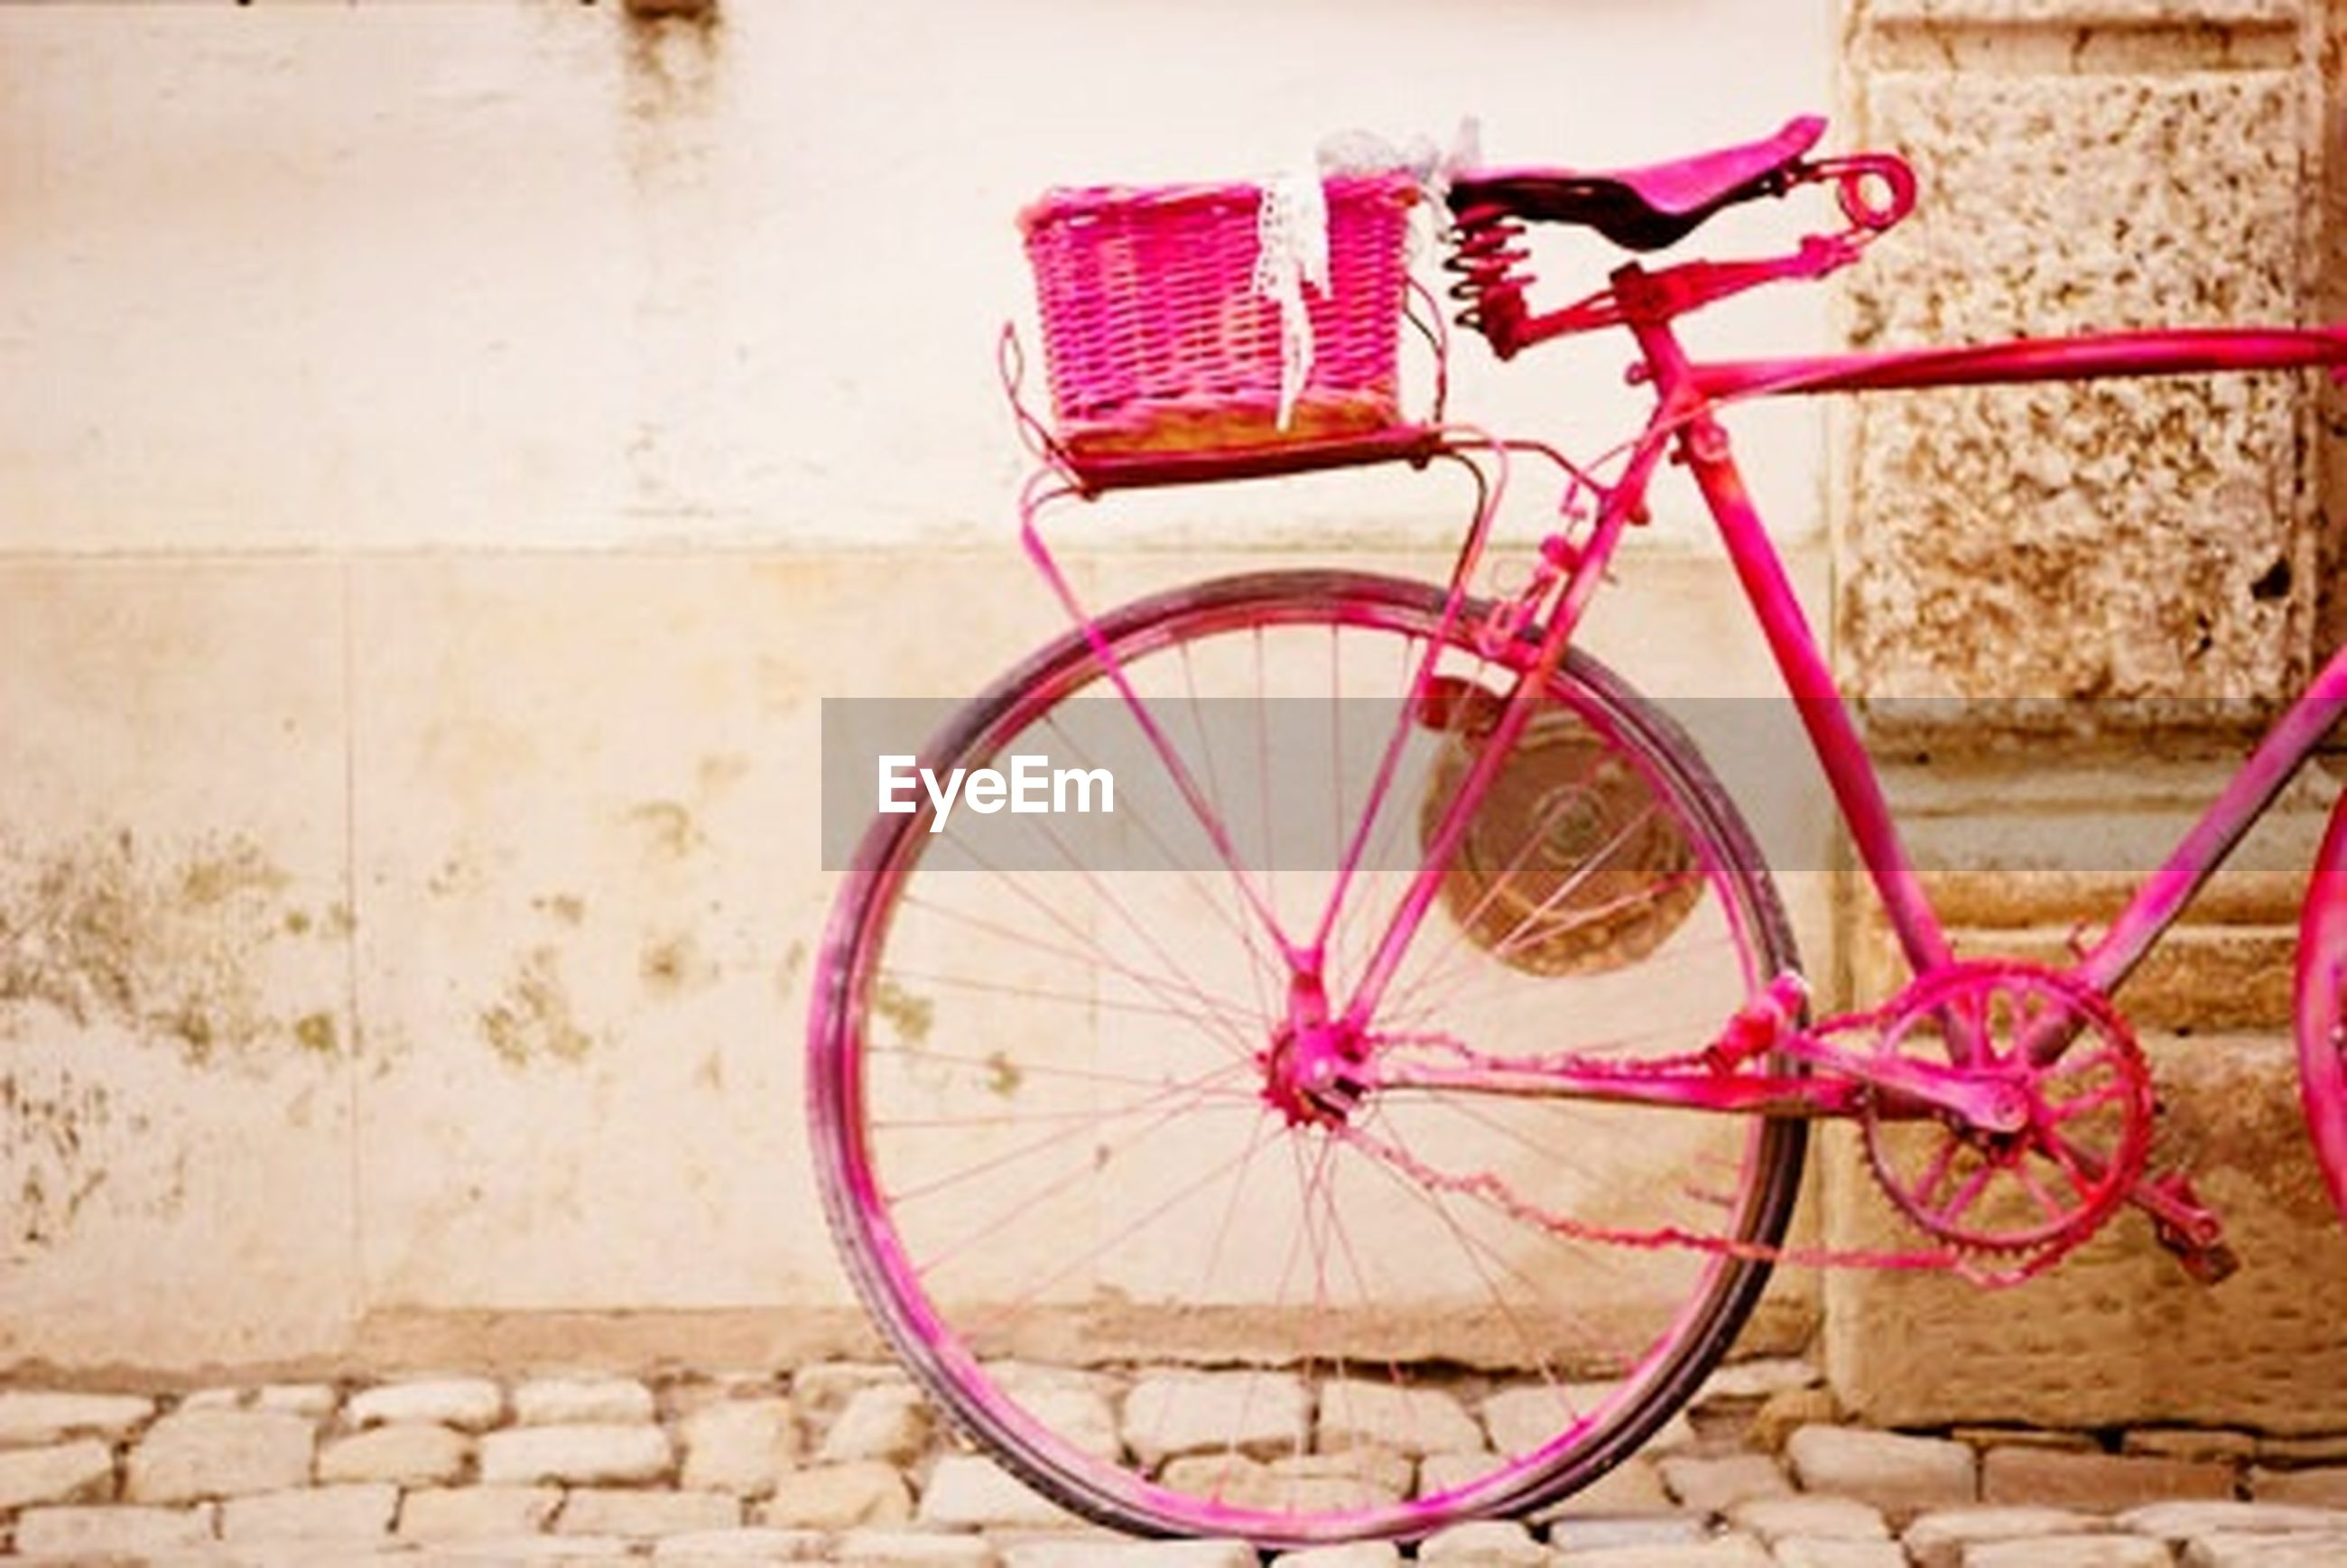 bicycle, transportation, city, mode of transport, old-fashioned, wheel, no people, outdoors, day